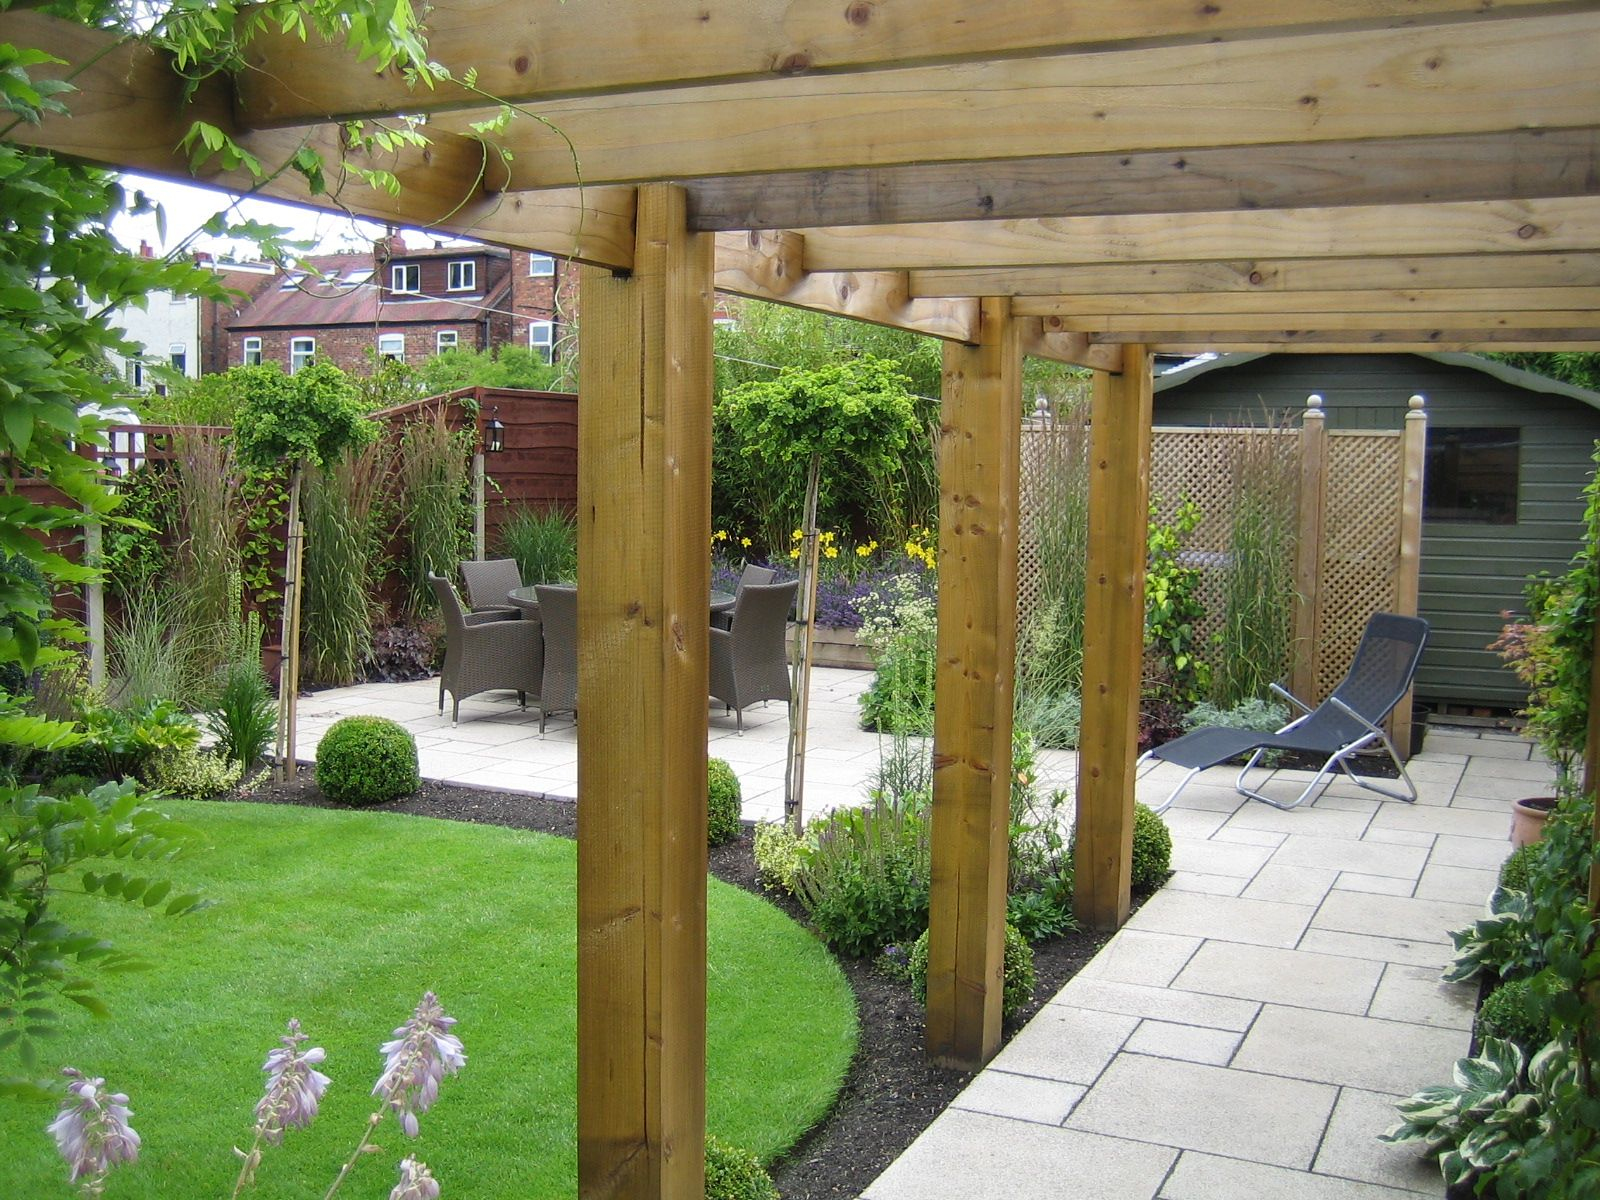 Timber Pergola Using Chunky Posts To Support Cross Beams